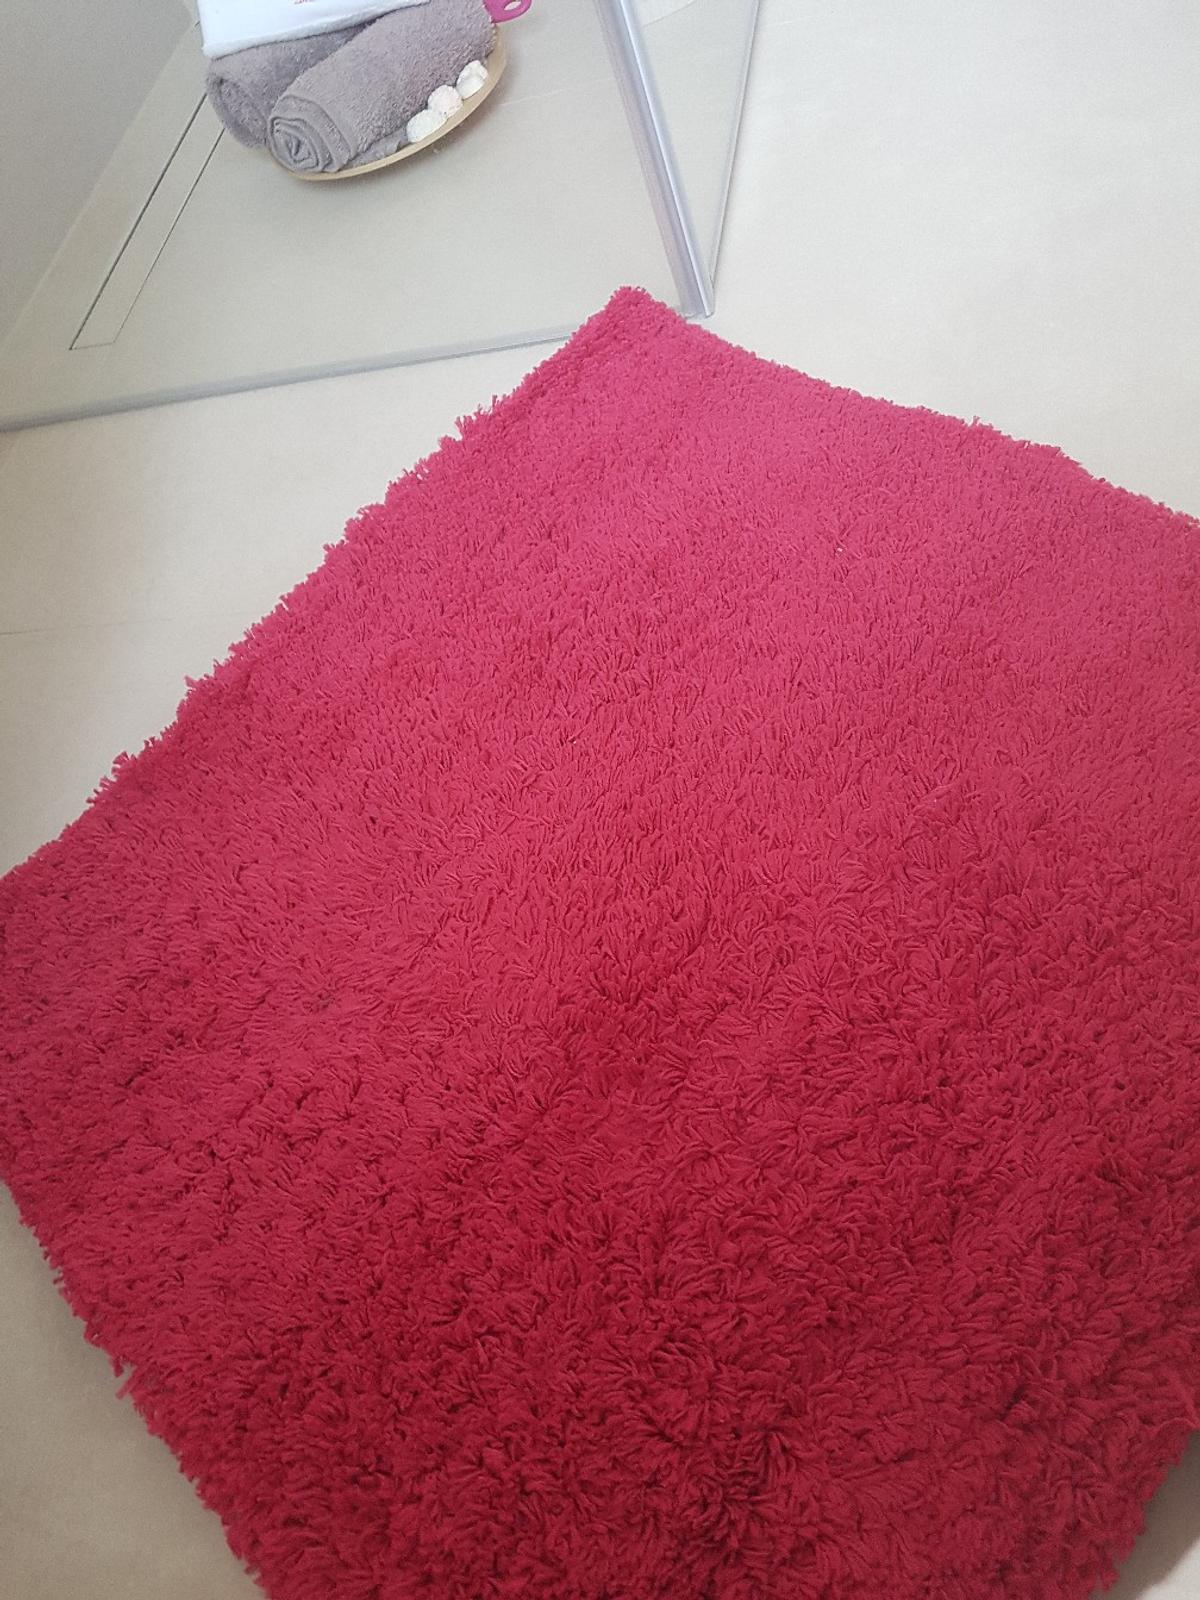 Teppich Hochflor Teppich Hochflor Pink Rosa In 33719 Bielefeld For 6 00 For Sale